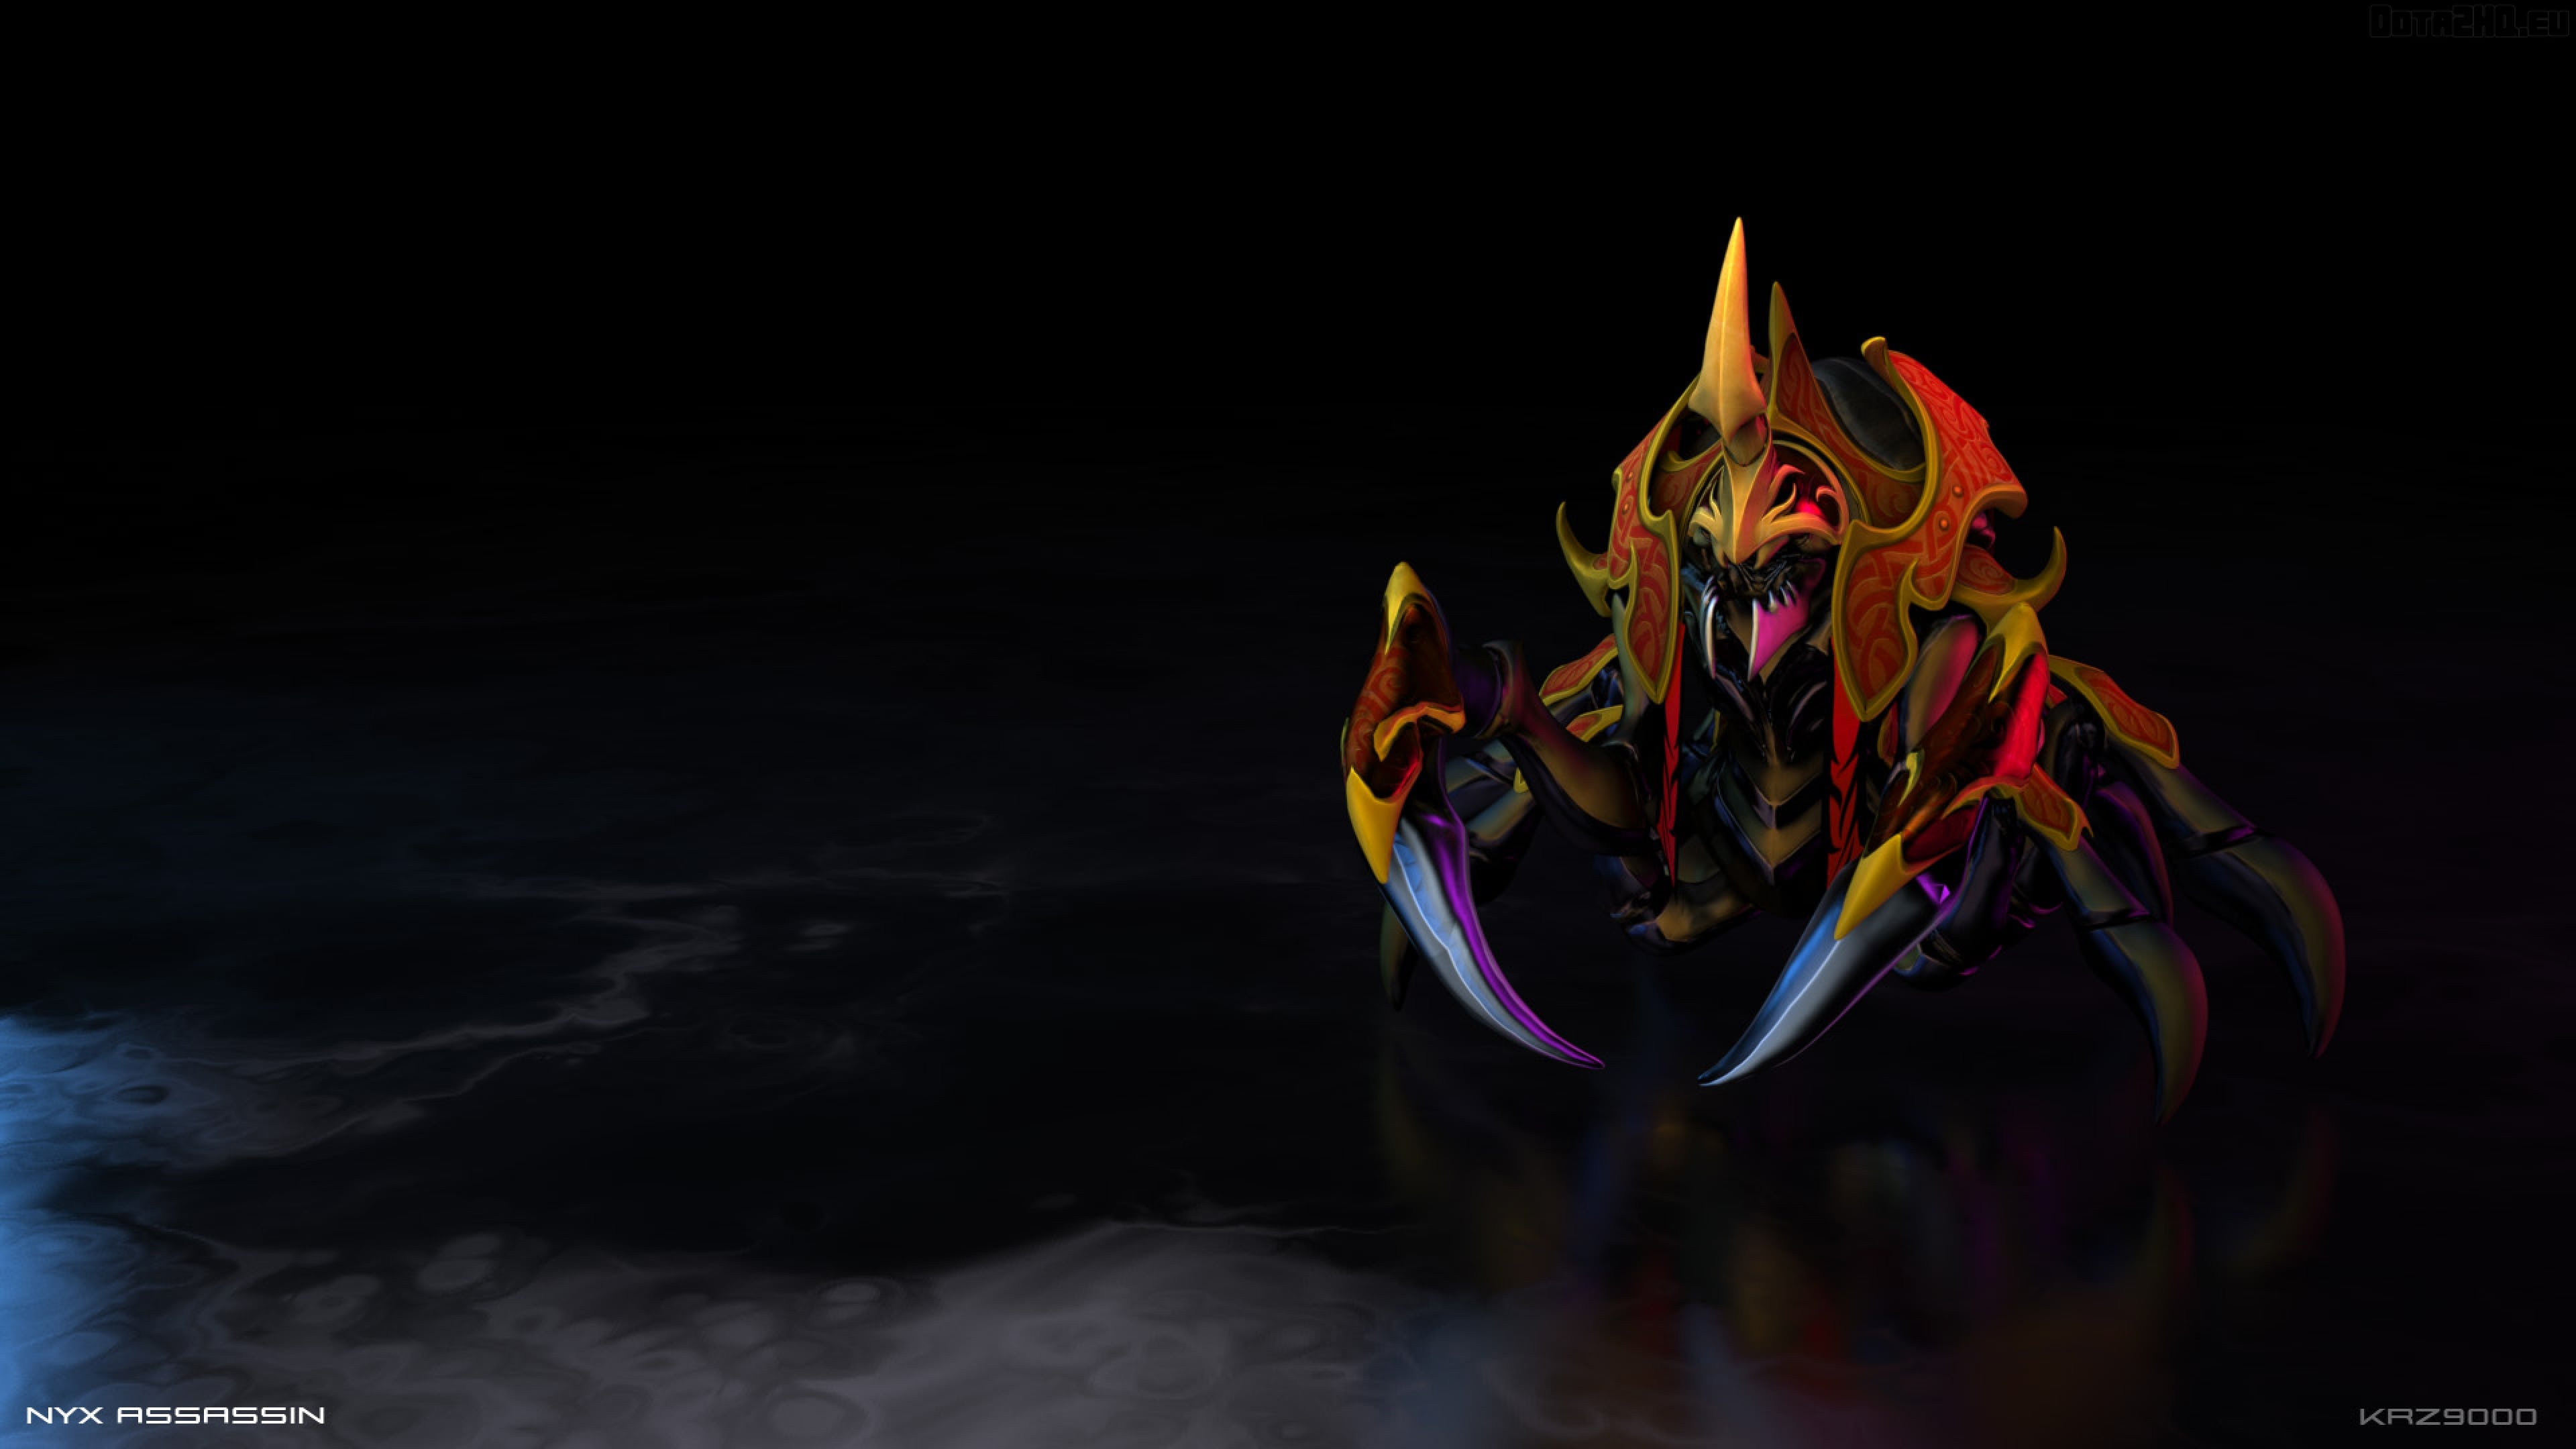 Dota2 : Nyx Assassin HQ wallpapers